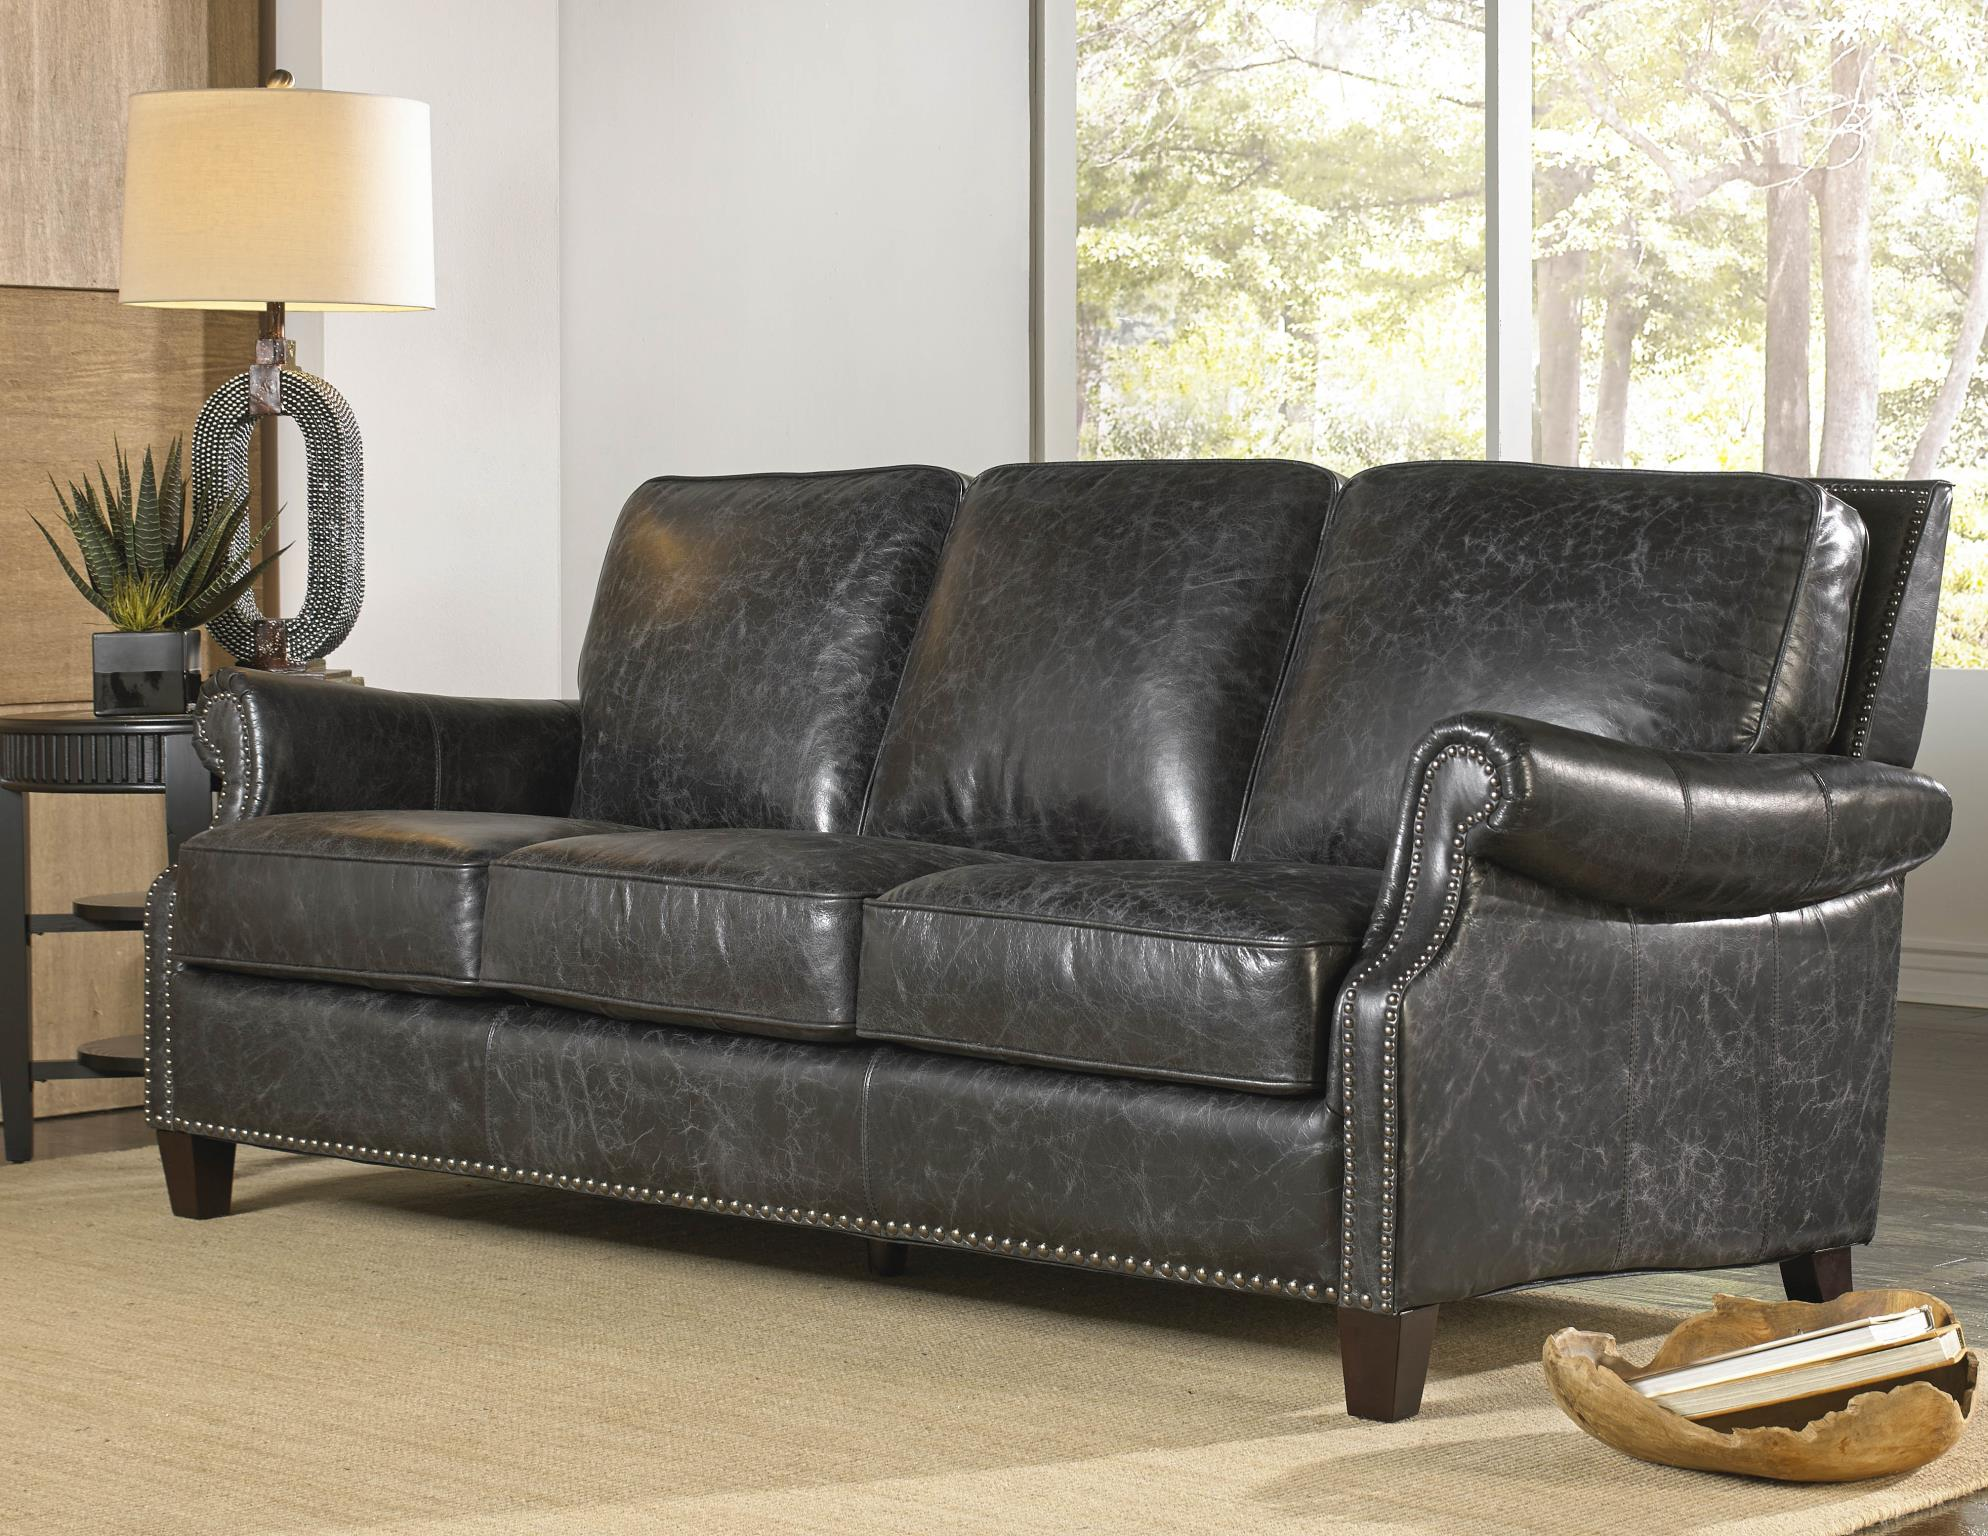 Nathan 1441 Leather Sofa In Vintage Charcoal   IN STOCK FAST FREE DELIVERY